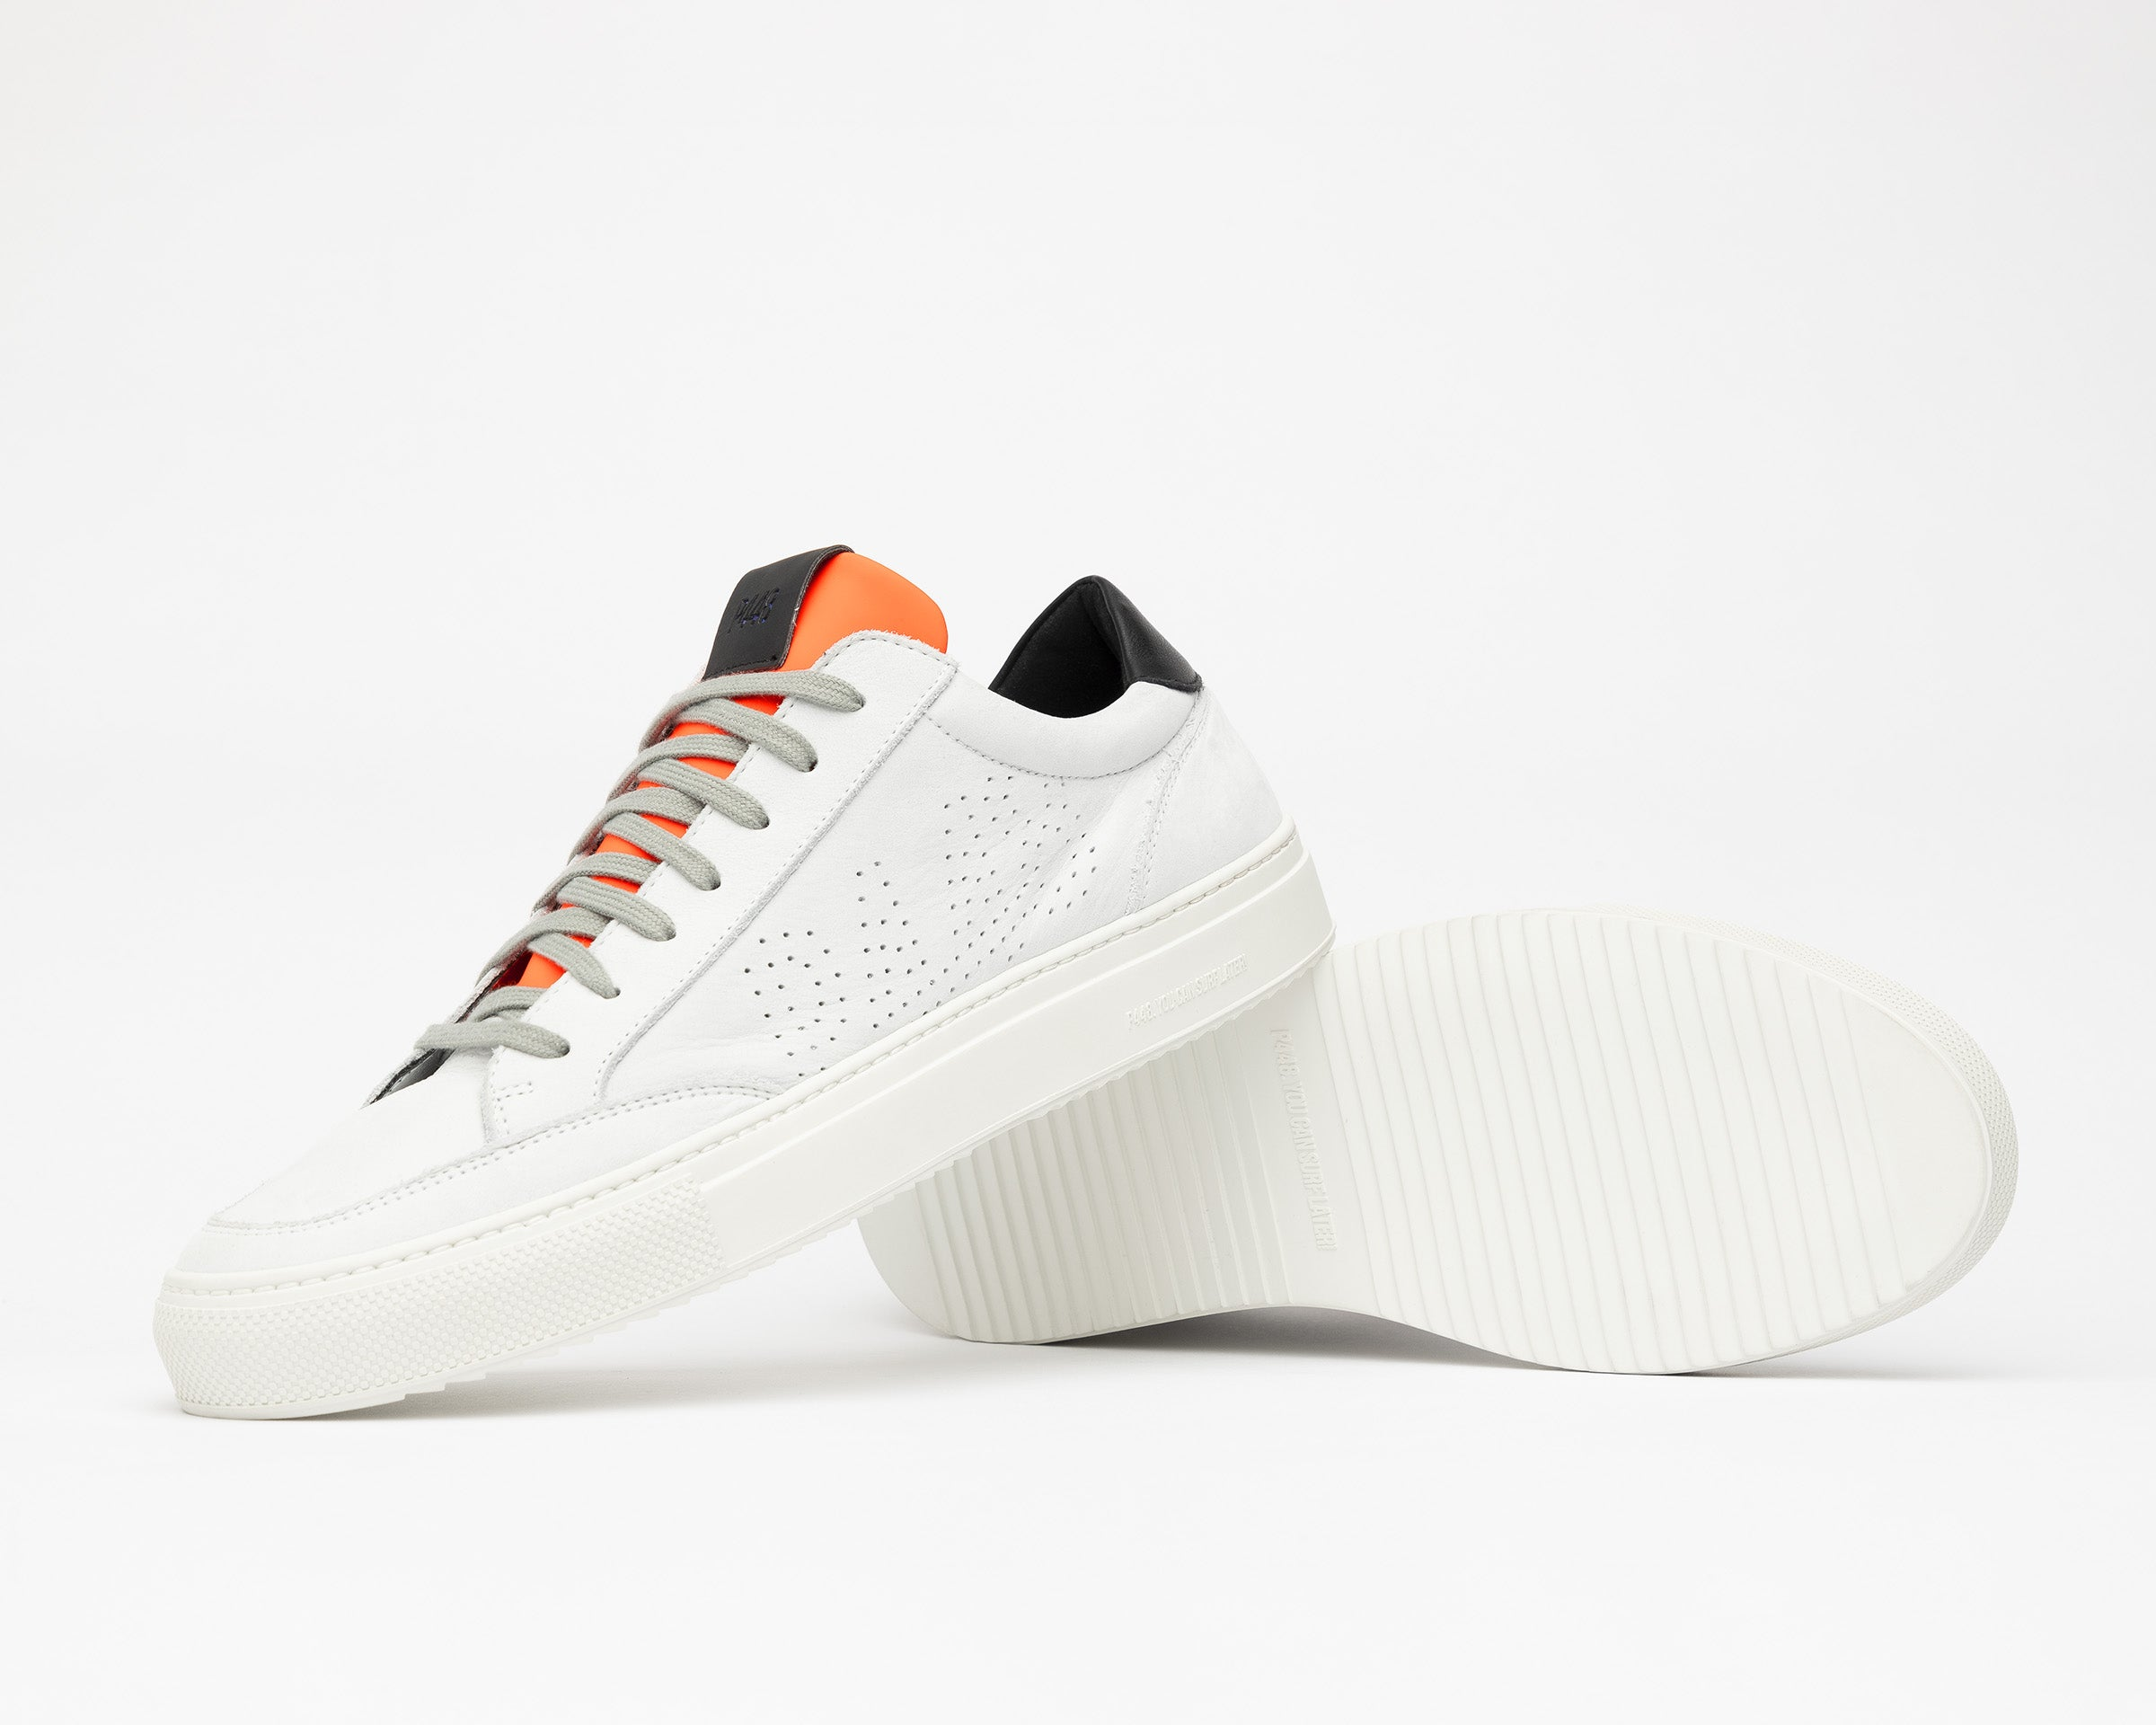 Soho White/Orange - Mens Sneaker - Detail